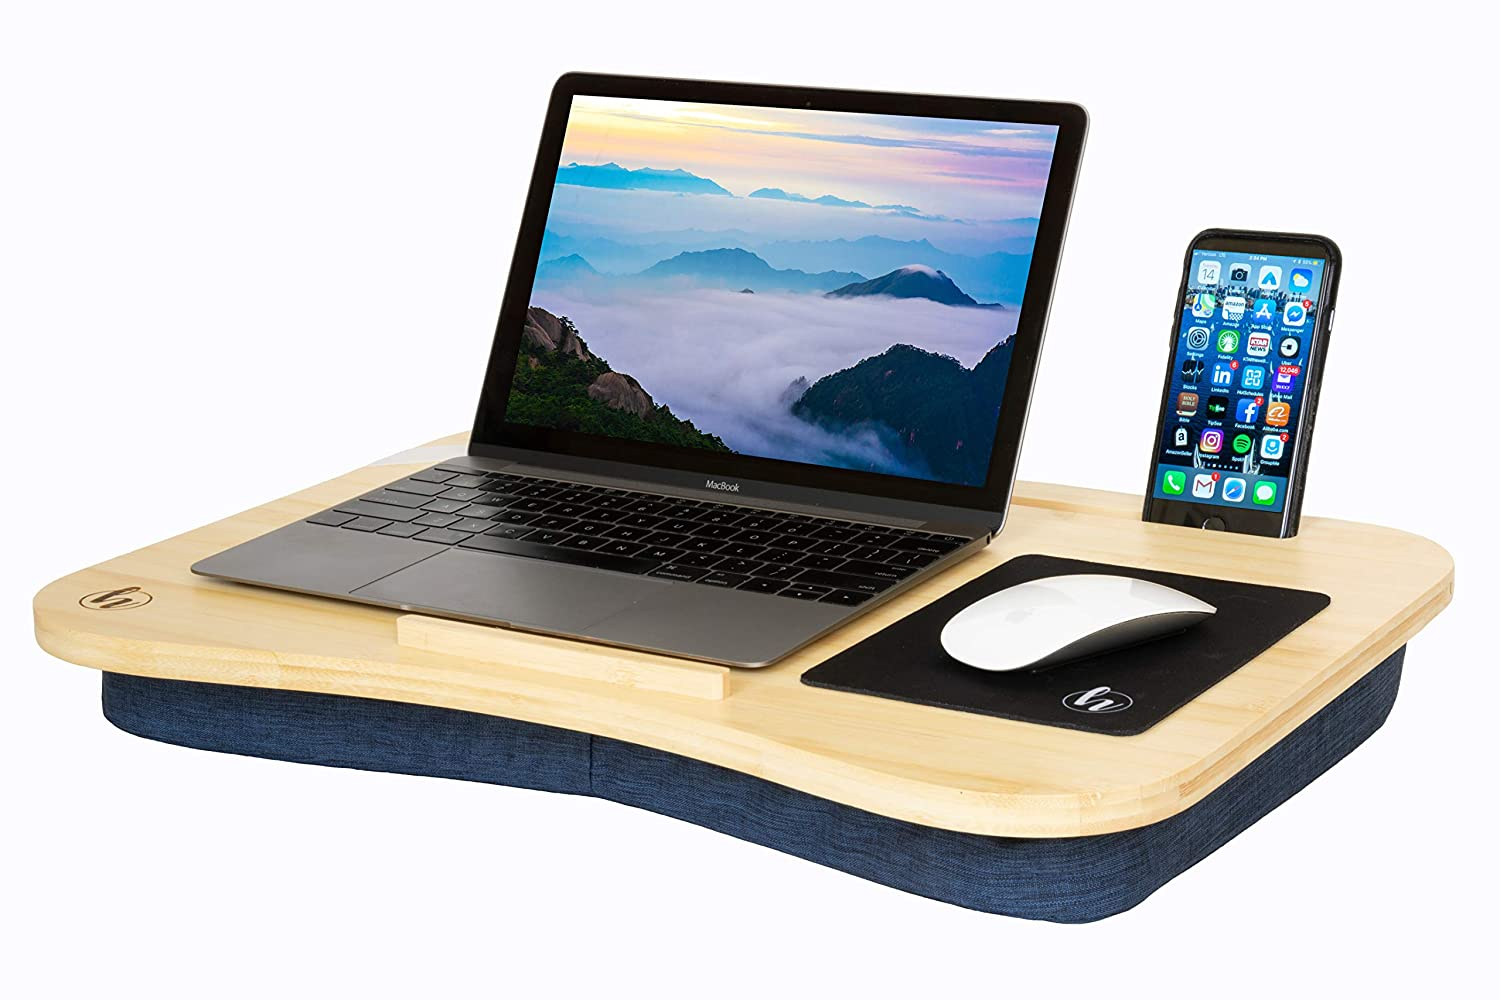 "Lap Desk by Hultzzzy - Large 100% Natural Bamboo Surface - Fits up to 17 Inch Laptops - 15"" Tablets - Pen & Phone Holder - Cushion Foundation"